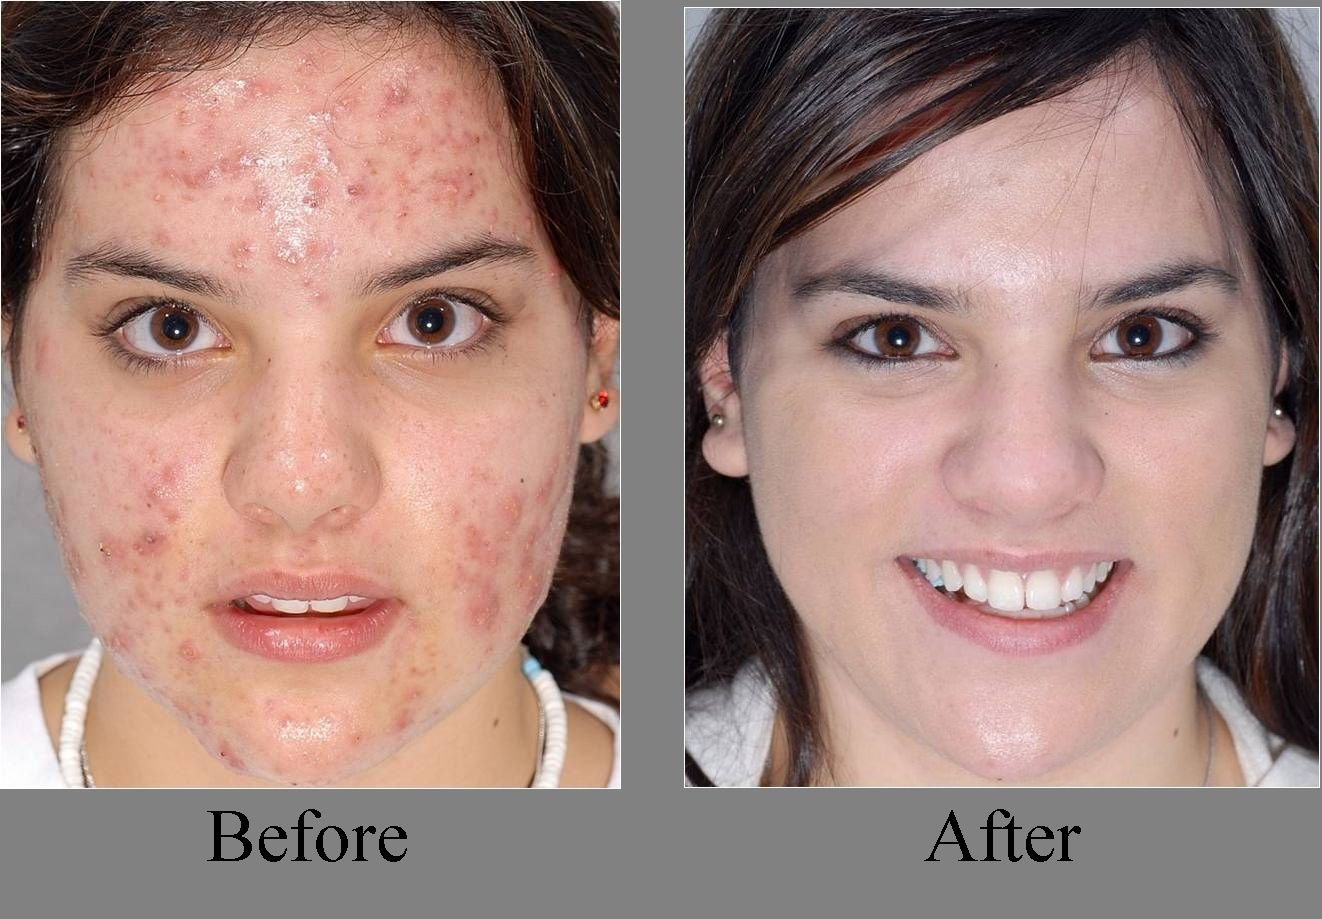 ACNEPRIL - Best Acne Pills - Acne Pills - Rid Acne with the New Acne Treatment